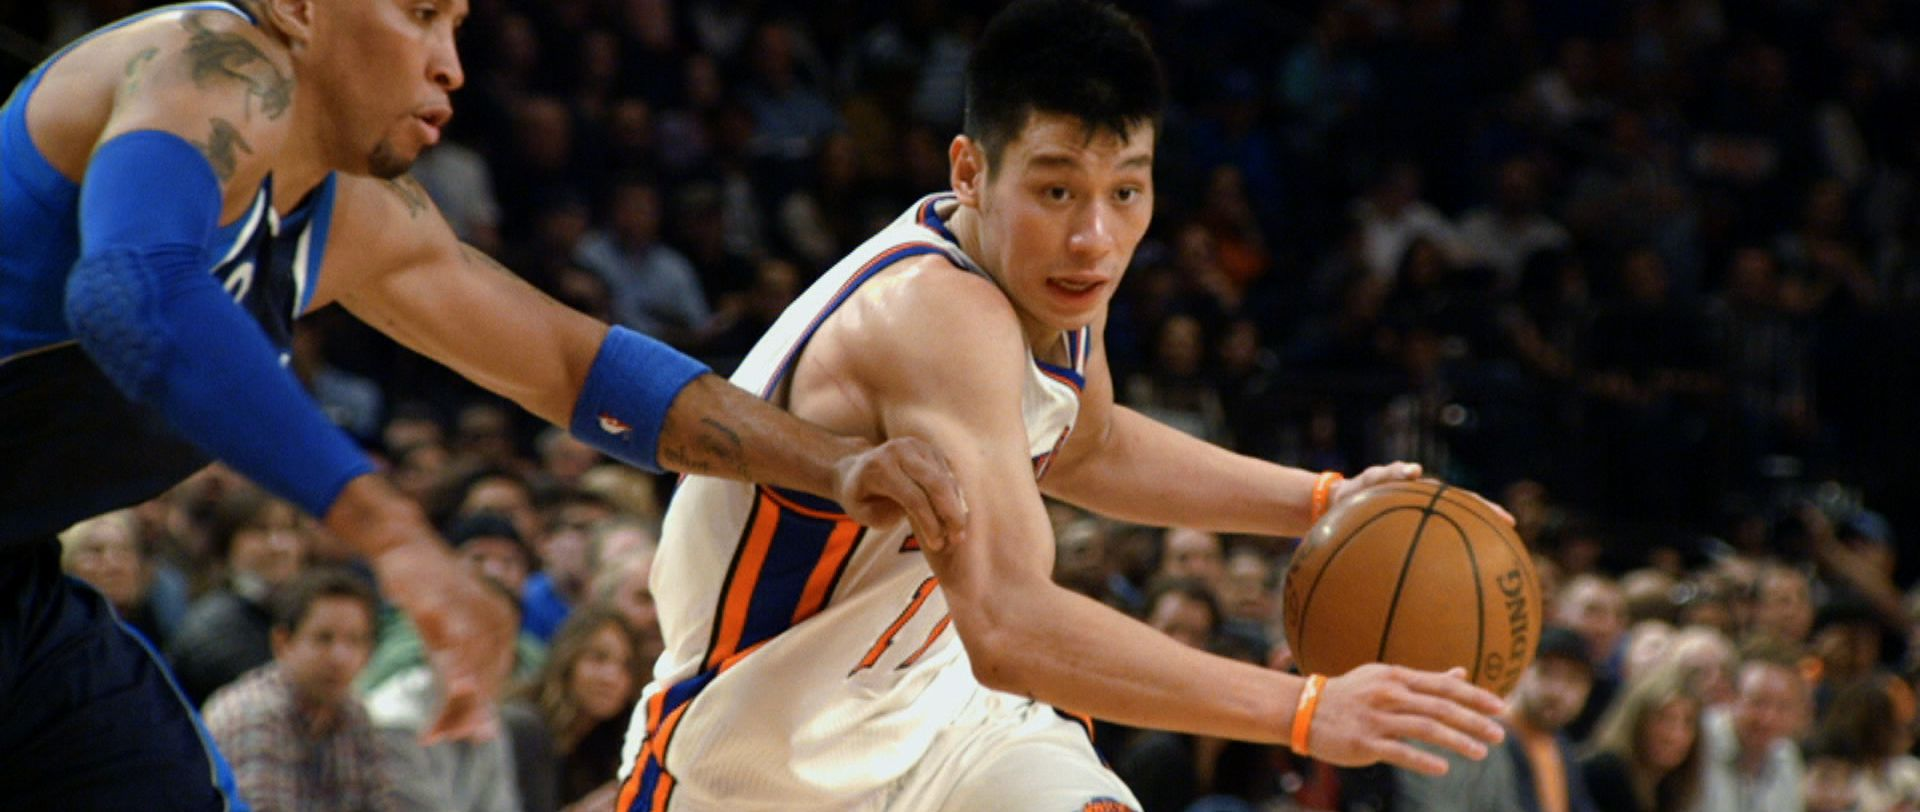 new concept 97857 70bbe Review  Linsanity - Slant Magazine